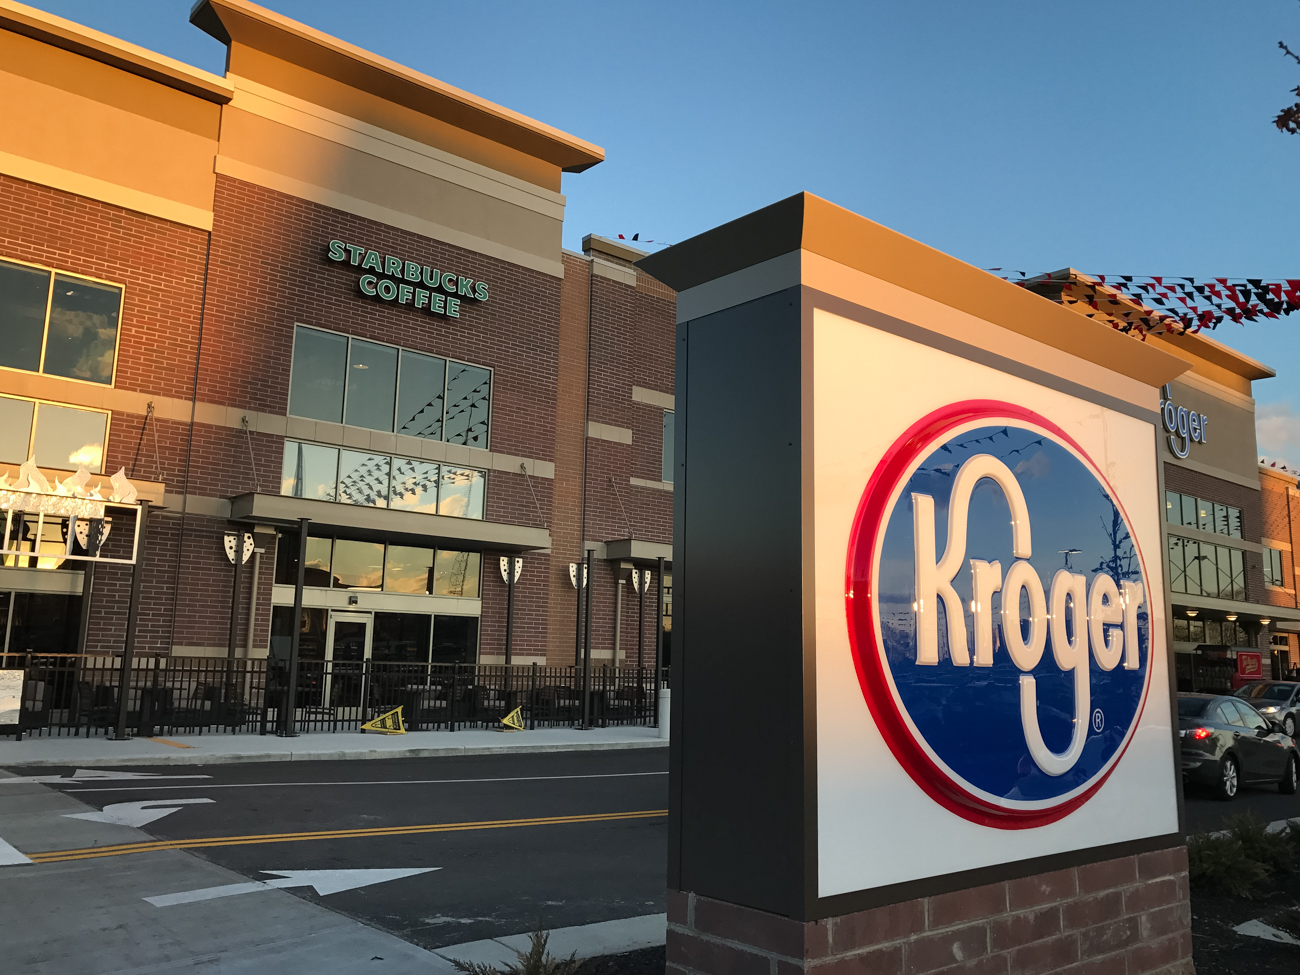 The new Kroger at the end of Short Vine opened March 8, 2017. It features two stories of grocery options as well as a natural foods section, bistro, Little Clinic, and a Starbucks. It also touts the largest living wall in Ohio. ADDRESS: 21 E. Corry St., Cincinnati, OH 45219 / Image: Phil Armstrong, Cincinnati Refined // Published: 3.14.17